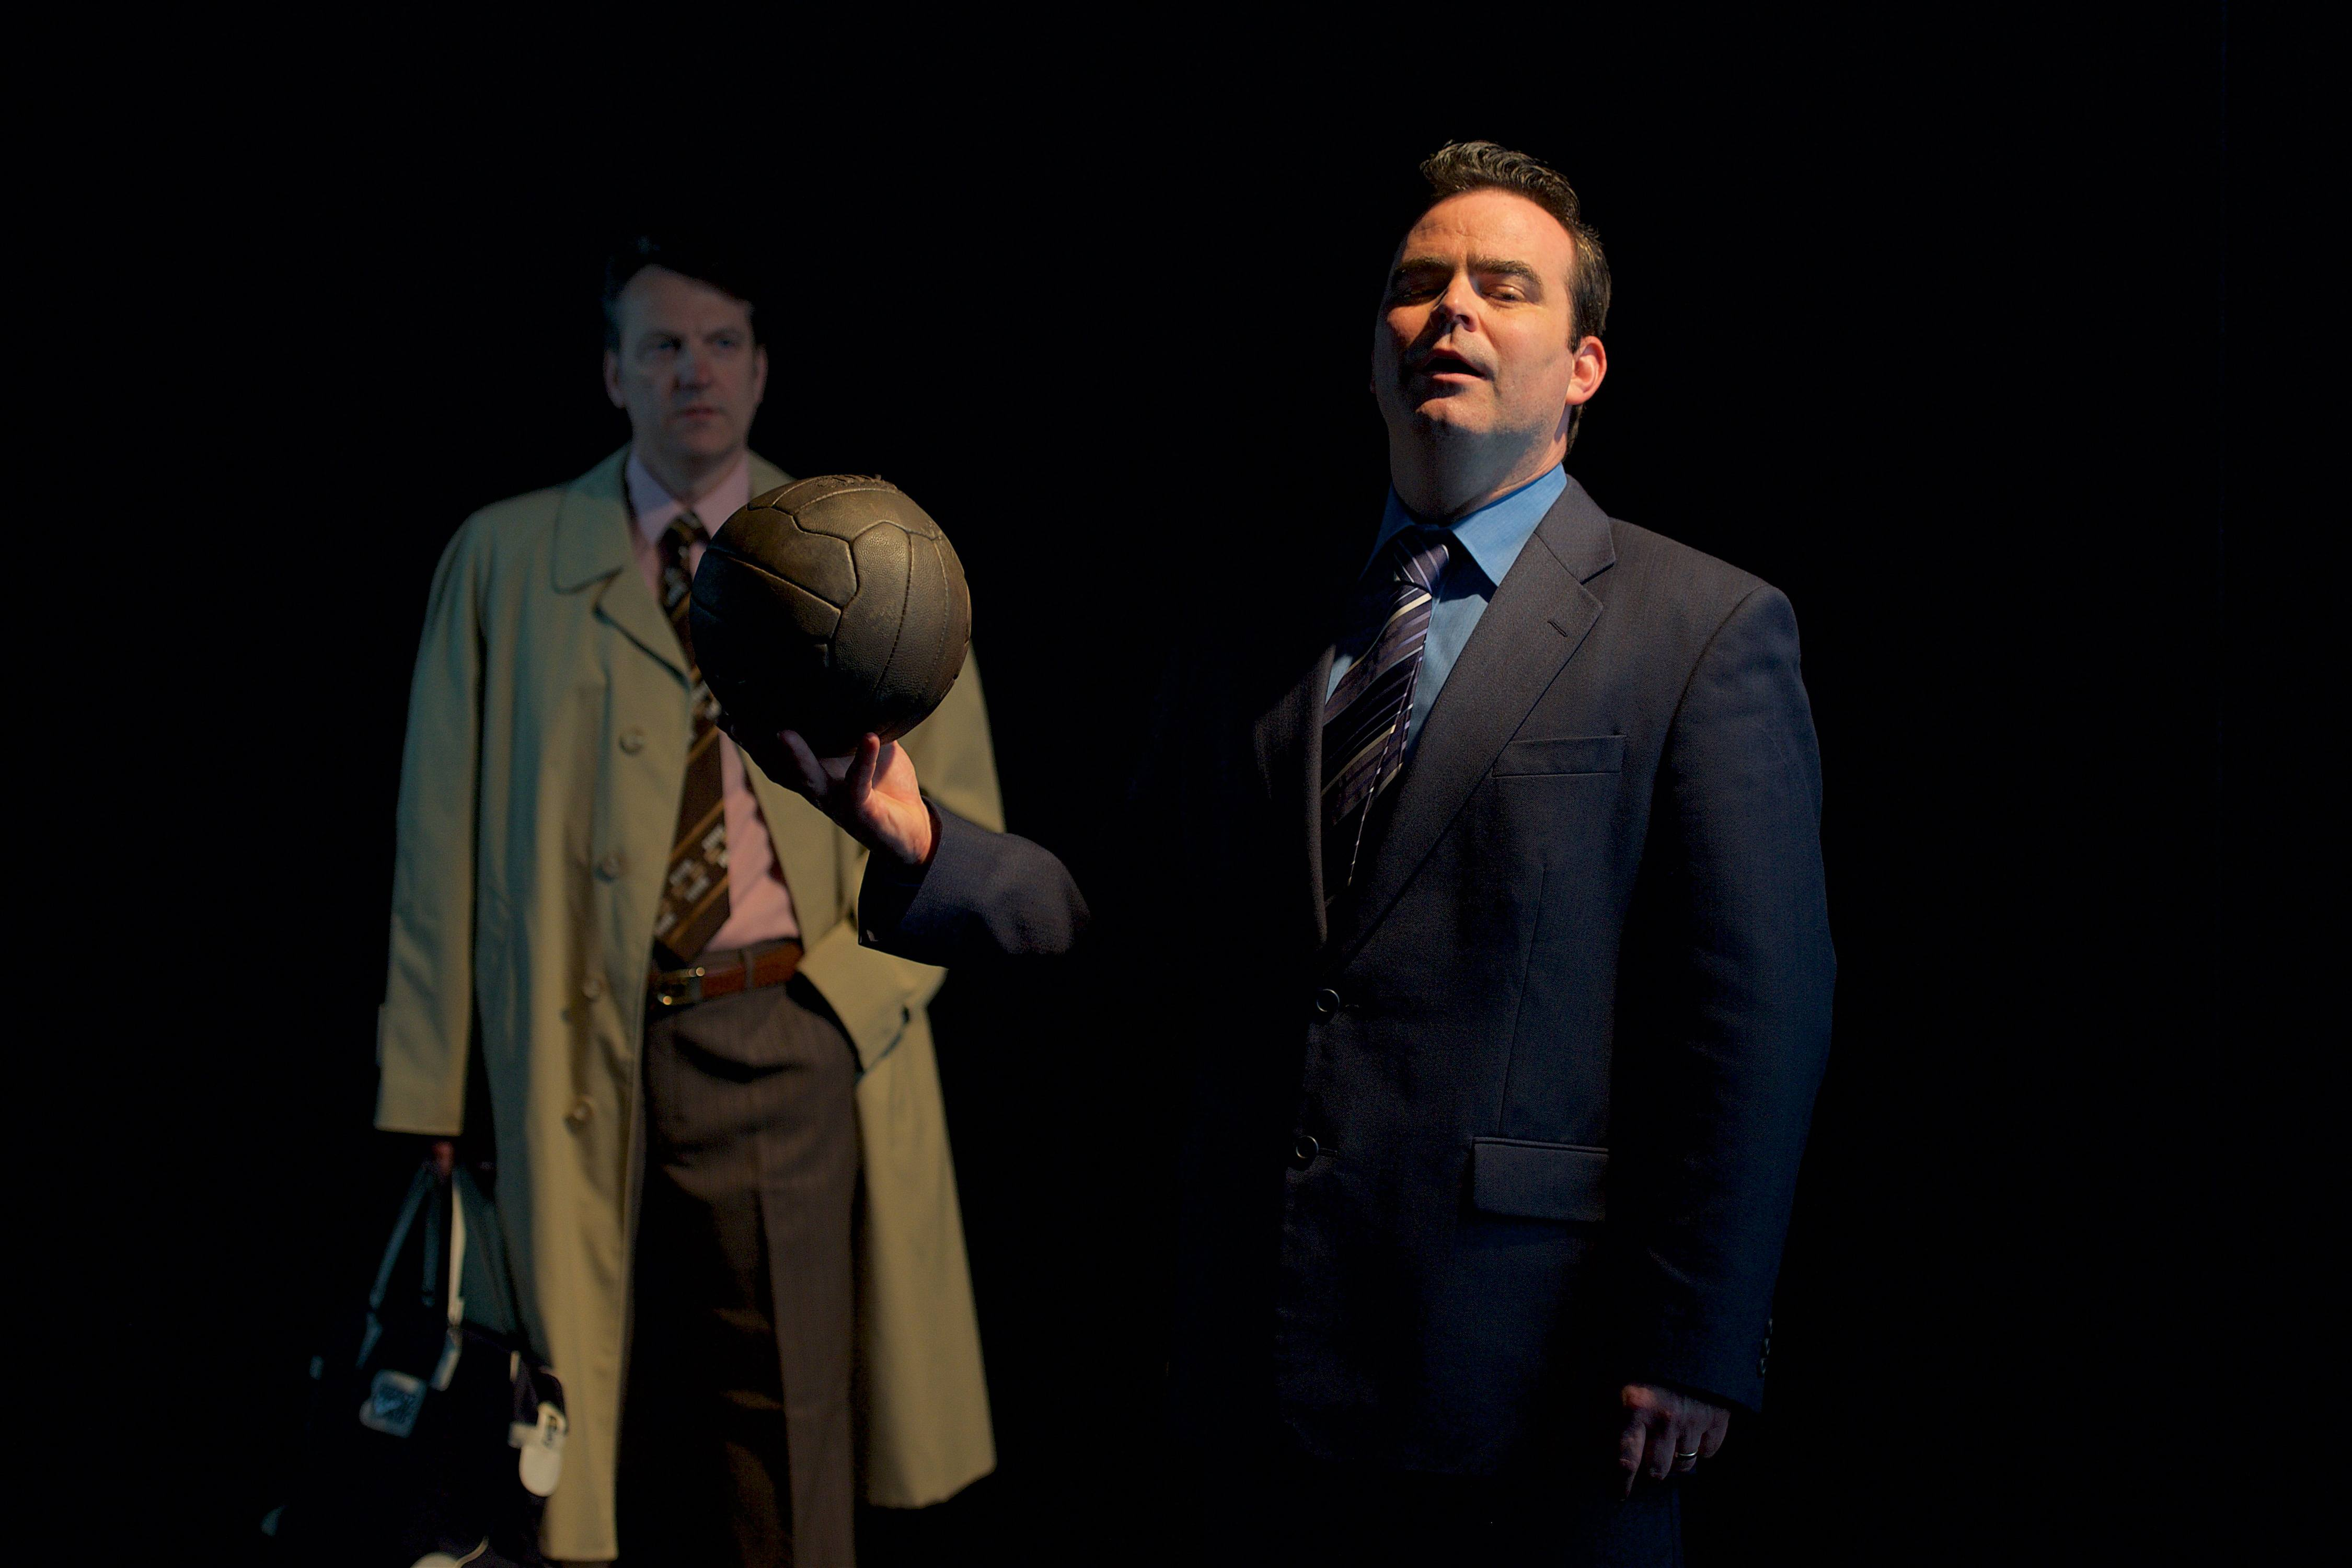 The Damned United – stage adaptation of David Peace's novel returns to West Yorkshire Playhouse after sell-out success